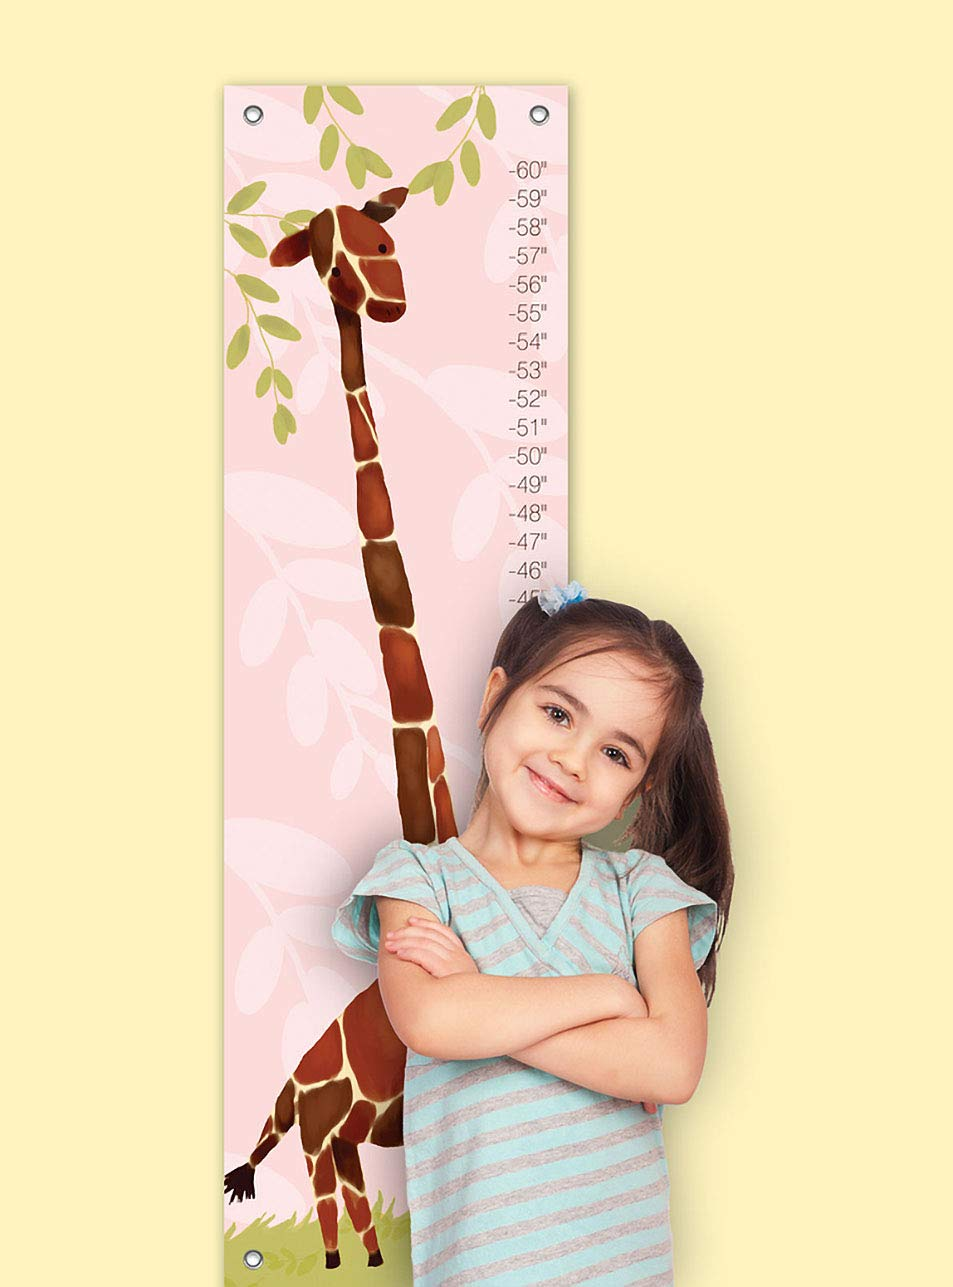 Oopsy daisy Gillespie Giraffe Growth Chart by Meghann OHara 12 by 42 Inches Fine Art for Kids PE2966